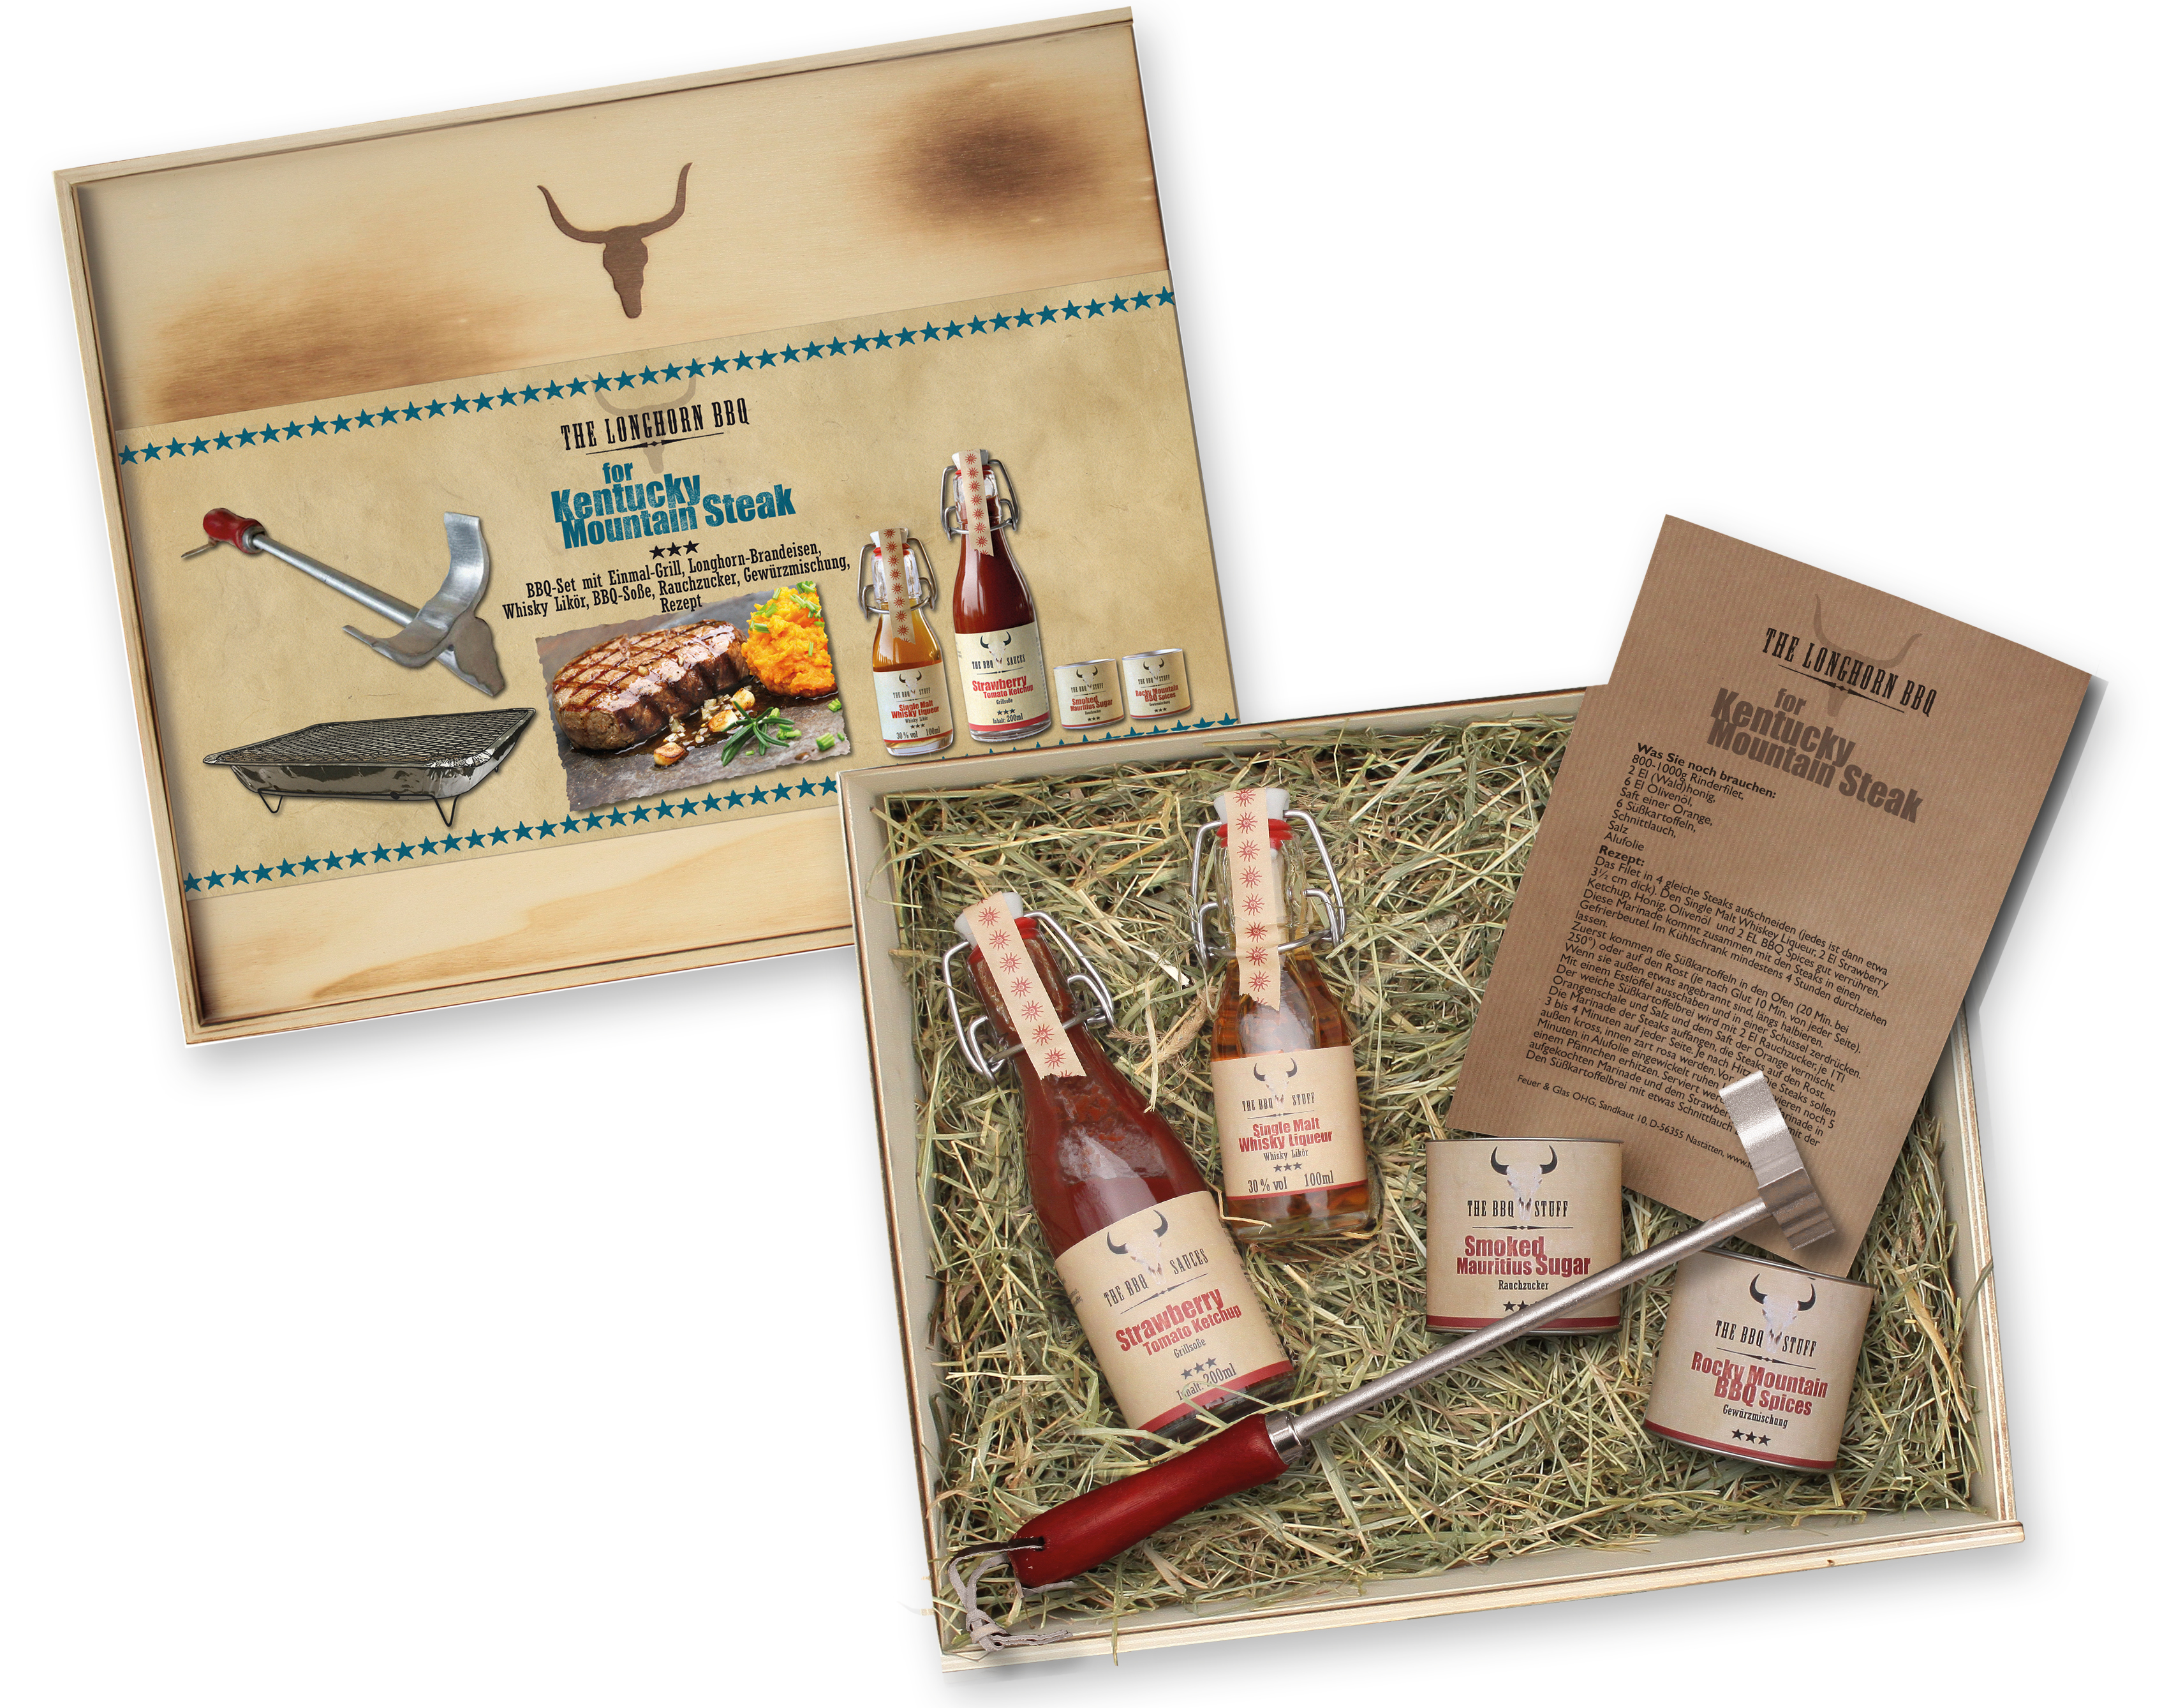 The Longhorn BBQ Kit - Kentucky Mountain Steak